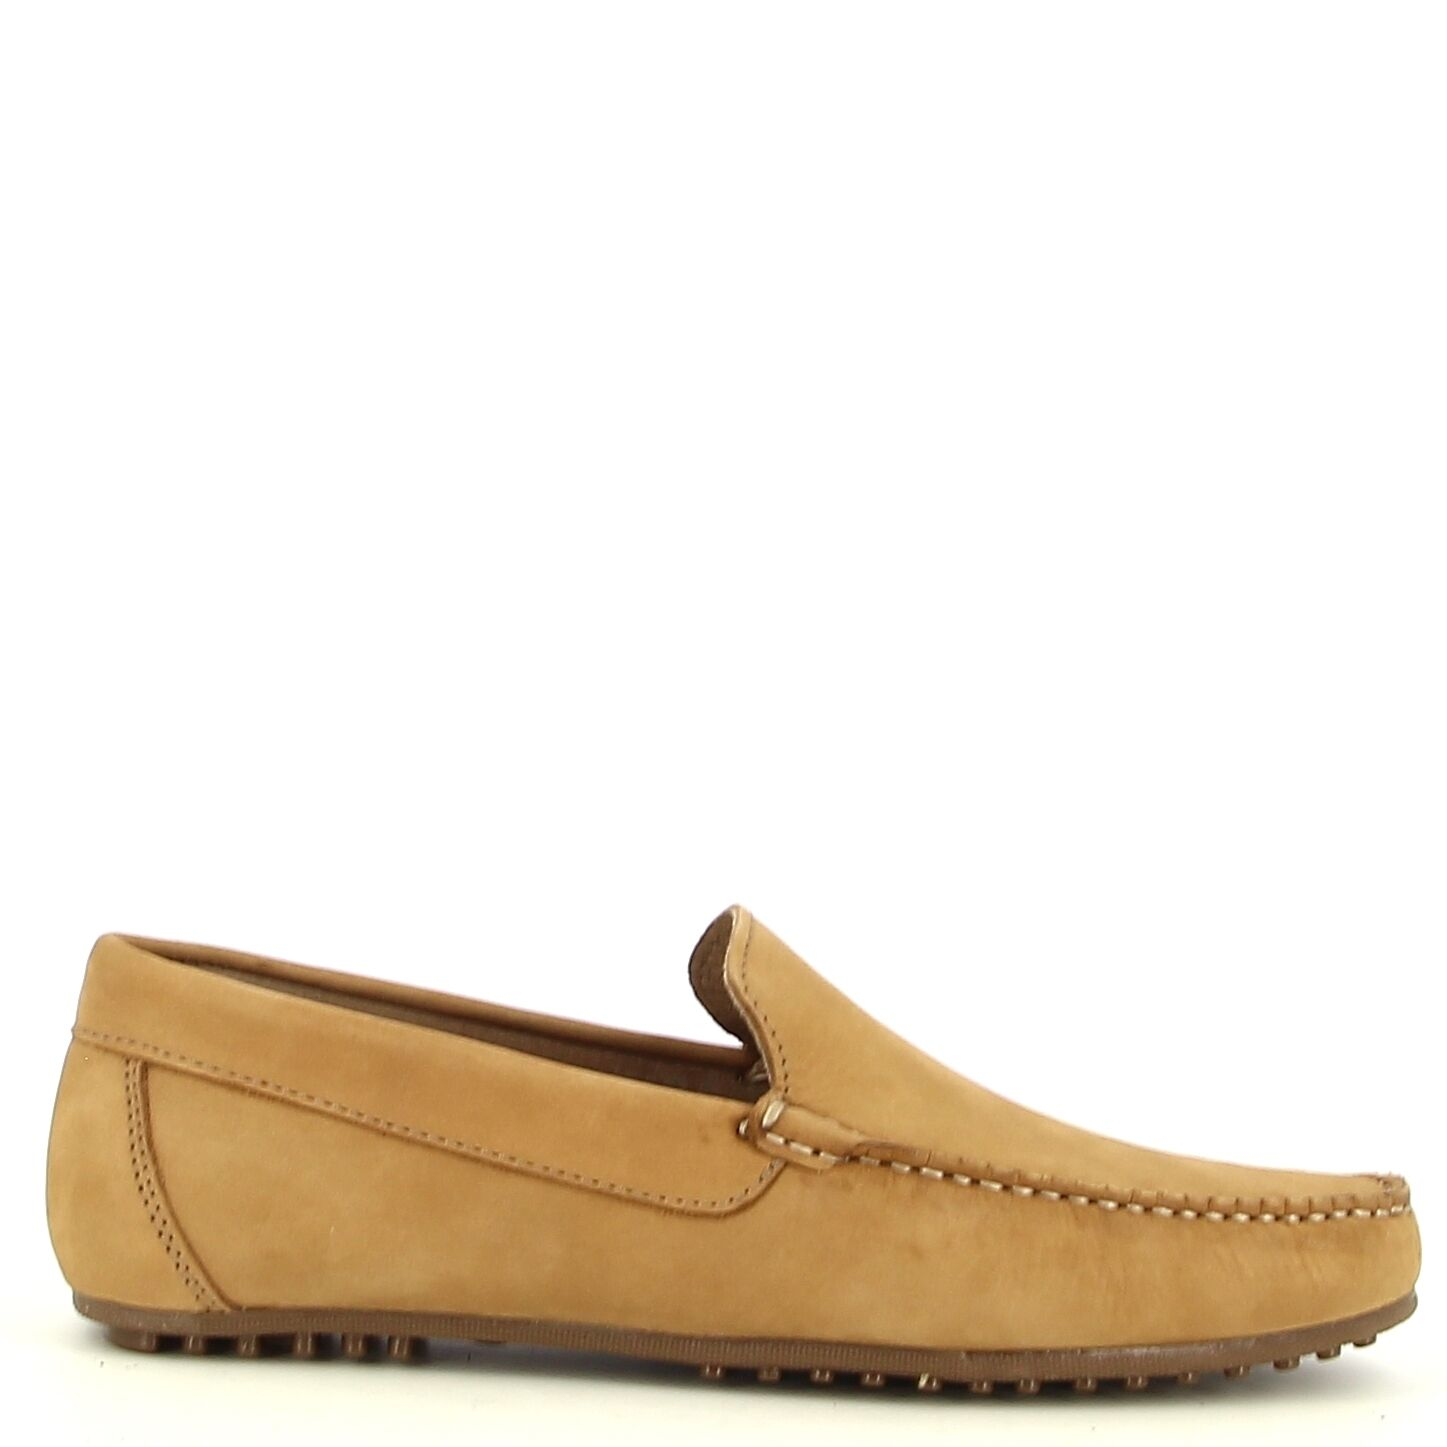 Ken Shoe Fashion - Camel mocassins